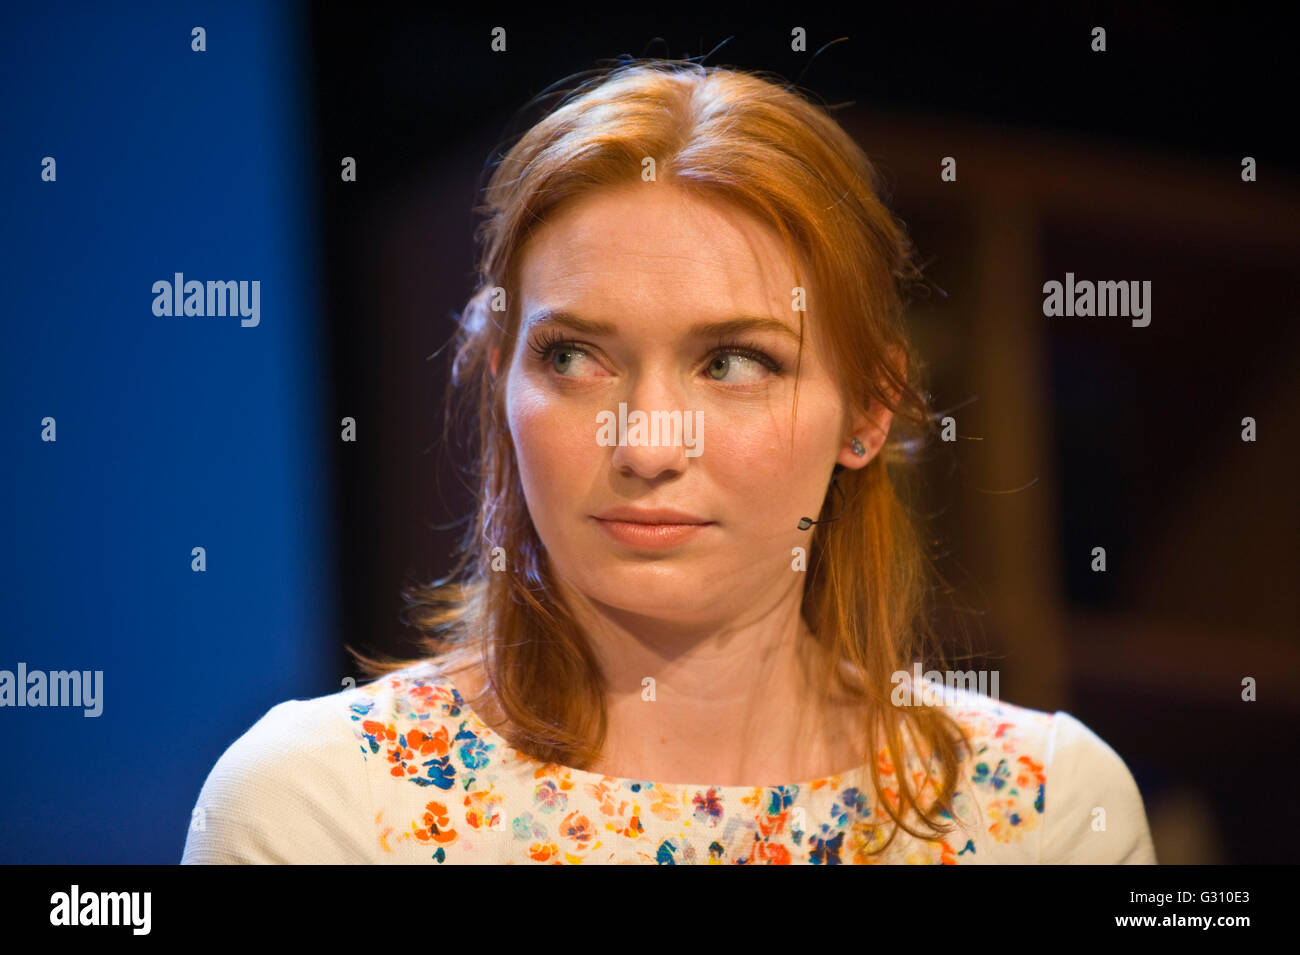 Eleanor Tomlinson who played Demelza Poldark in the 2015 BBC production of Poldark speaking on stage at Hay Festival - Stock Image